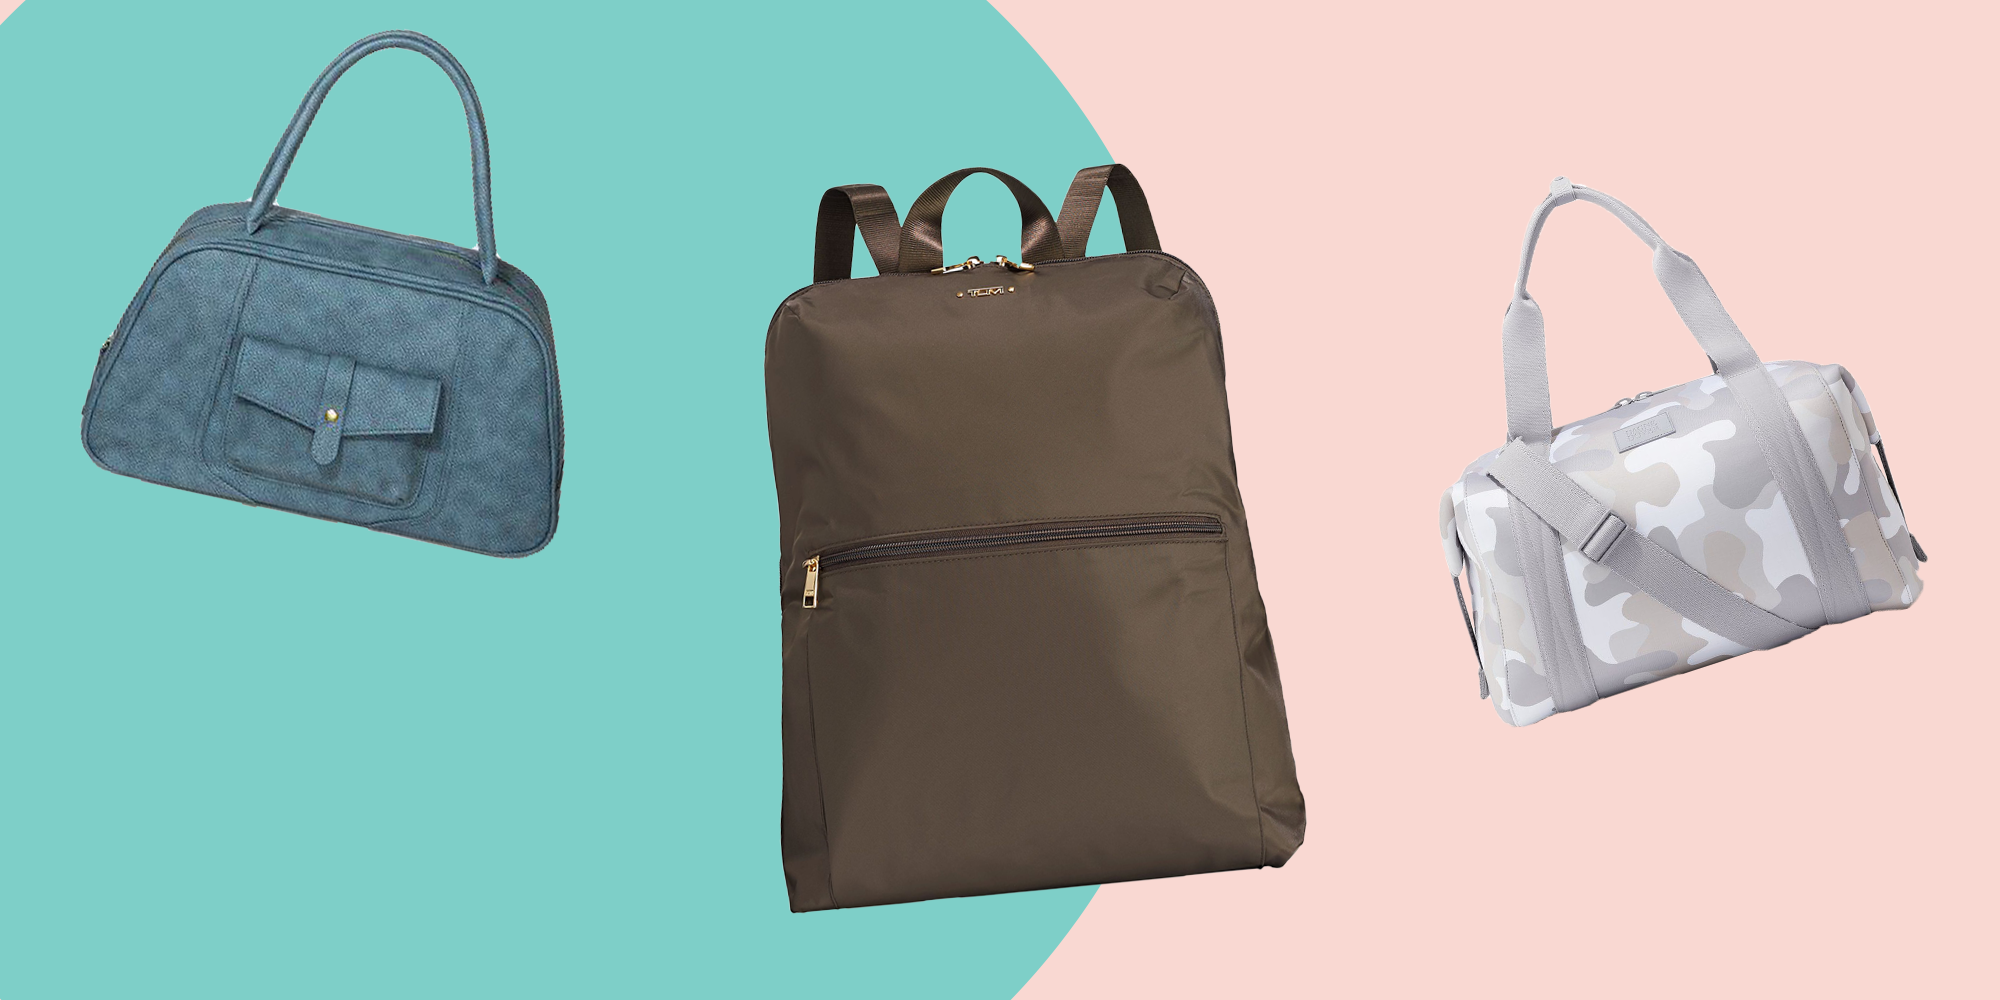 741f05dd6fe2 16 of the Best Weekender Bags for Women in 2019